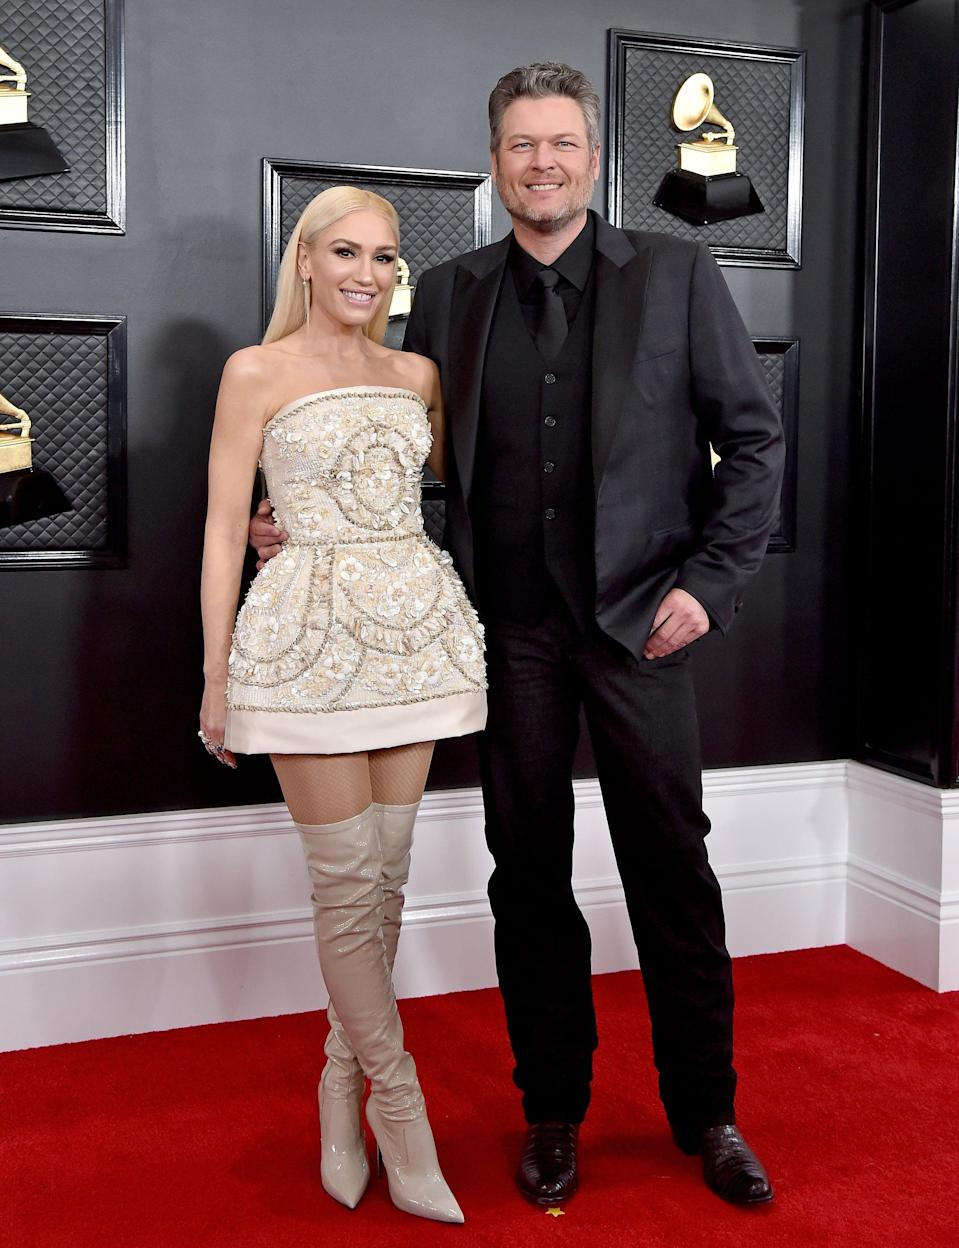 """<p>Once again, however, Shelton found love during a professional gig: he and Stefani met as judges on <strong>The Voice</strong>, although <a href=""""http://www.billboard.com/articles/news/7453469/blake-shelton-billboard-cover-divorce-miranda-lambert-gwen-stefani-relationship-the-voice-if-im-honest-album"""" class=""""link rapid-noclick-resp"""" rel=""""nofollow noopener"""" target=""""_blank"""" data-ylk=""""slk:they weren't particularly close at first"""">they weren't particularly close at first</a>, according to a <strong>Billboard</strong> interview with Shelton. Around the same time as Shelton's divorce from Lambert, Stefani was splitting with her husband, <a class=""""link rapid-noclick-resp"""" href=""""https://www.popsugar.com/Gavin-Rossdale"""" rel=""""nofollow noopener"""" target=""""_blank"""" data-ylk=""""slk:Gavin Rossdale"""">Gavin Rossdale</a>, and, as Shelton told <strong>Billboard</strong>, she helped him through the tough time.</p> <p>""""She didn't tell me much, because we didn't know each other at the time, but she said, 'I'm going through something very similar to what you're going through. I understand. And I hate it.'... Gwen saved my life. Who else on earth could understand going through a high-profile divorce from another musician? You can't even imagine the similarities in our divorces.""""<br></p> <p>By November 2015, Stefani and Shelton confirmed they were dating. """"<span>Blake and Gwen have begun dating</span>,"""" one source told <strong>People</strong>. """"They've been supporting each other through a difficult time and they're really happy together."""" The singers' reps confirmed the news as well. </p> <p>The couple quickly became a fixture at music events and red carpets together, and they've been dating ever since. <a href=""""http://www.instagram.com/p/CG2tZeonC9m/"""" class=""""link rapid-noclick-resp"""" rel=""""nofollow noopener"""" target=""""_blank"""" data-ylk=""""slk:Stefani announced their engagement"""">Stefani announced their engagement</a> on Instagram on Oct. 27, with a sweet shot of the two together simply captioned """"@bl"""